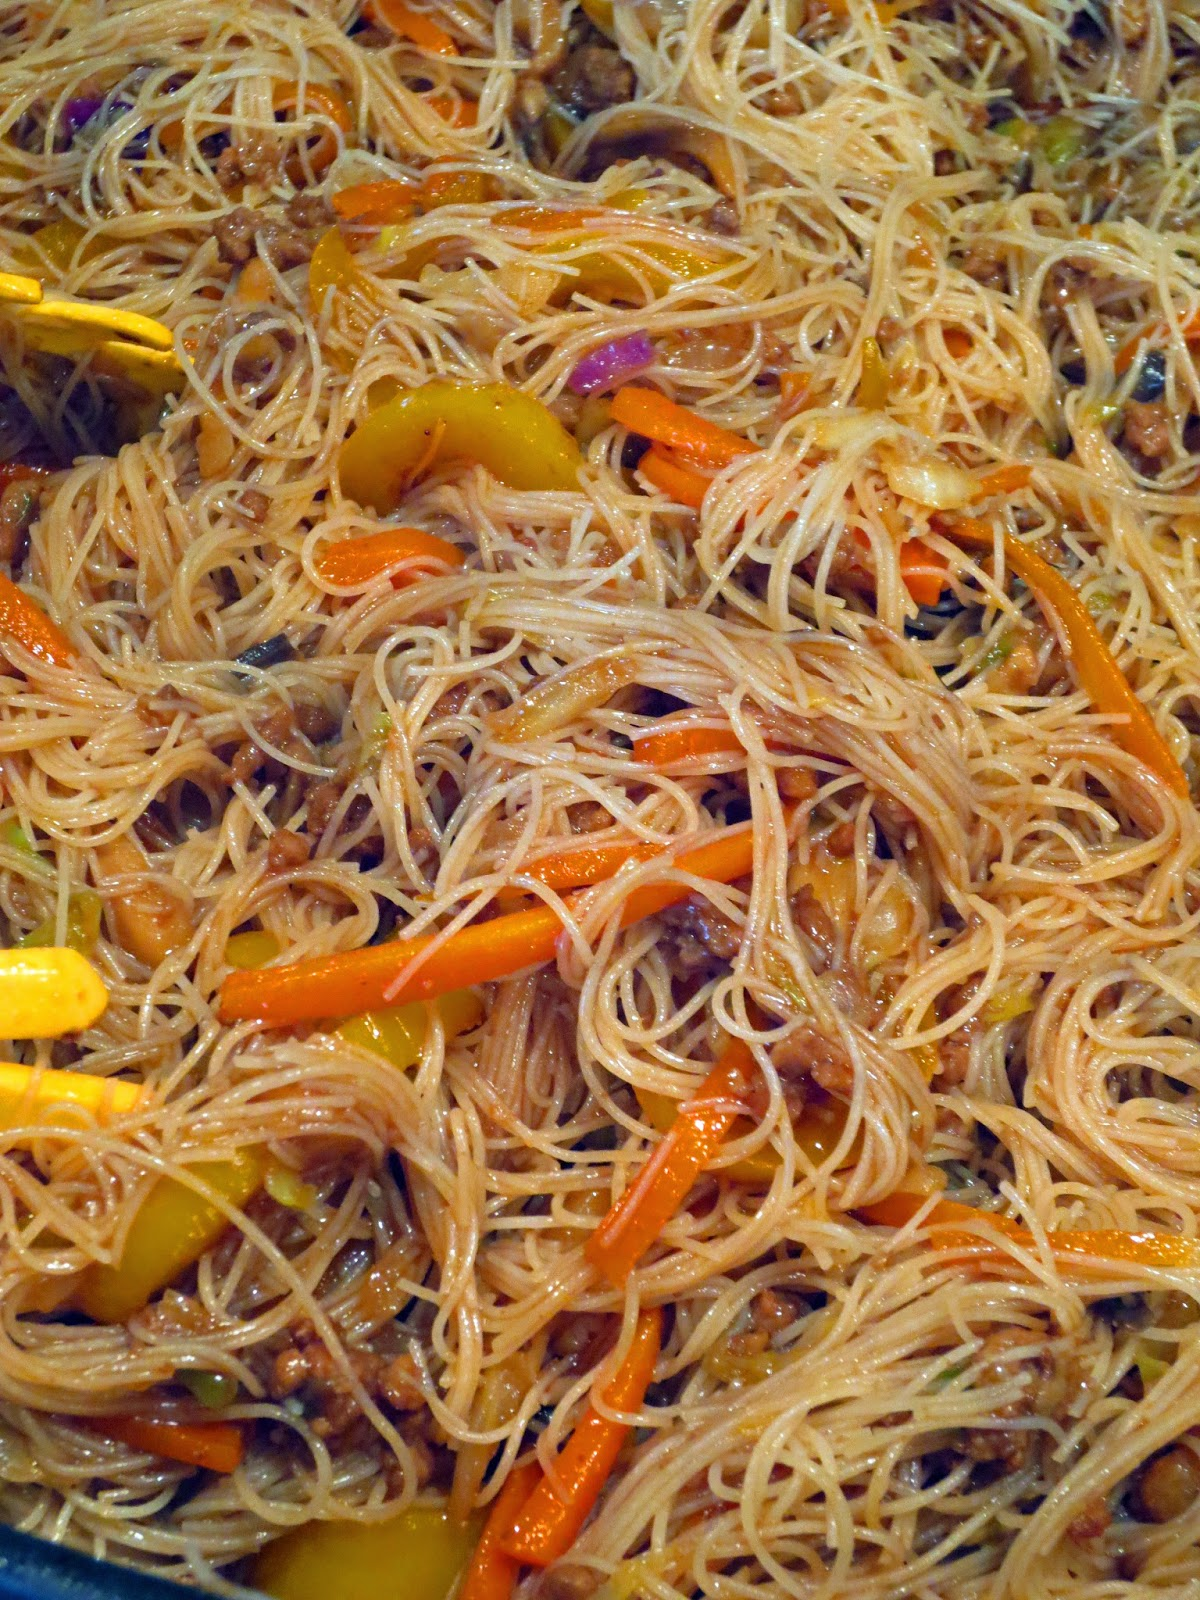 Cook And Stir Until Well Mixed And Sauce Is Evenly Distributed Add More Of  The Vegetable Broth As Necessary To Prevent The Noodles From Sticking To  The